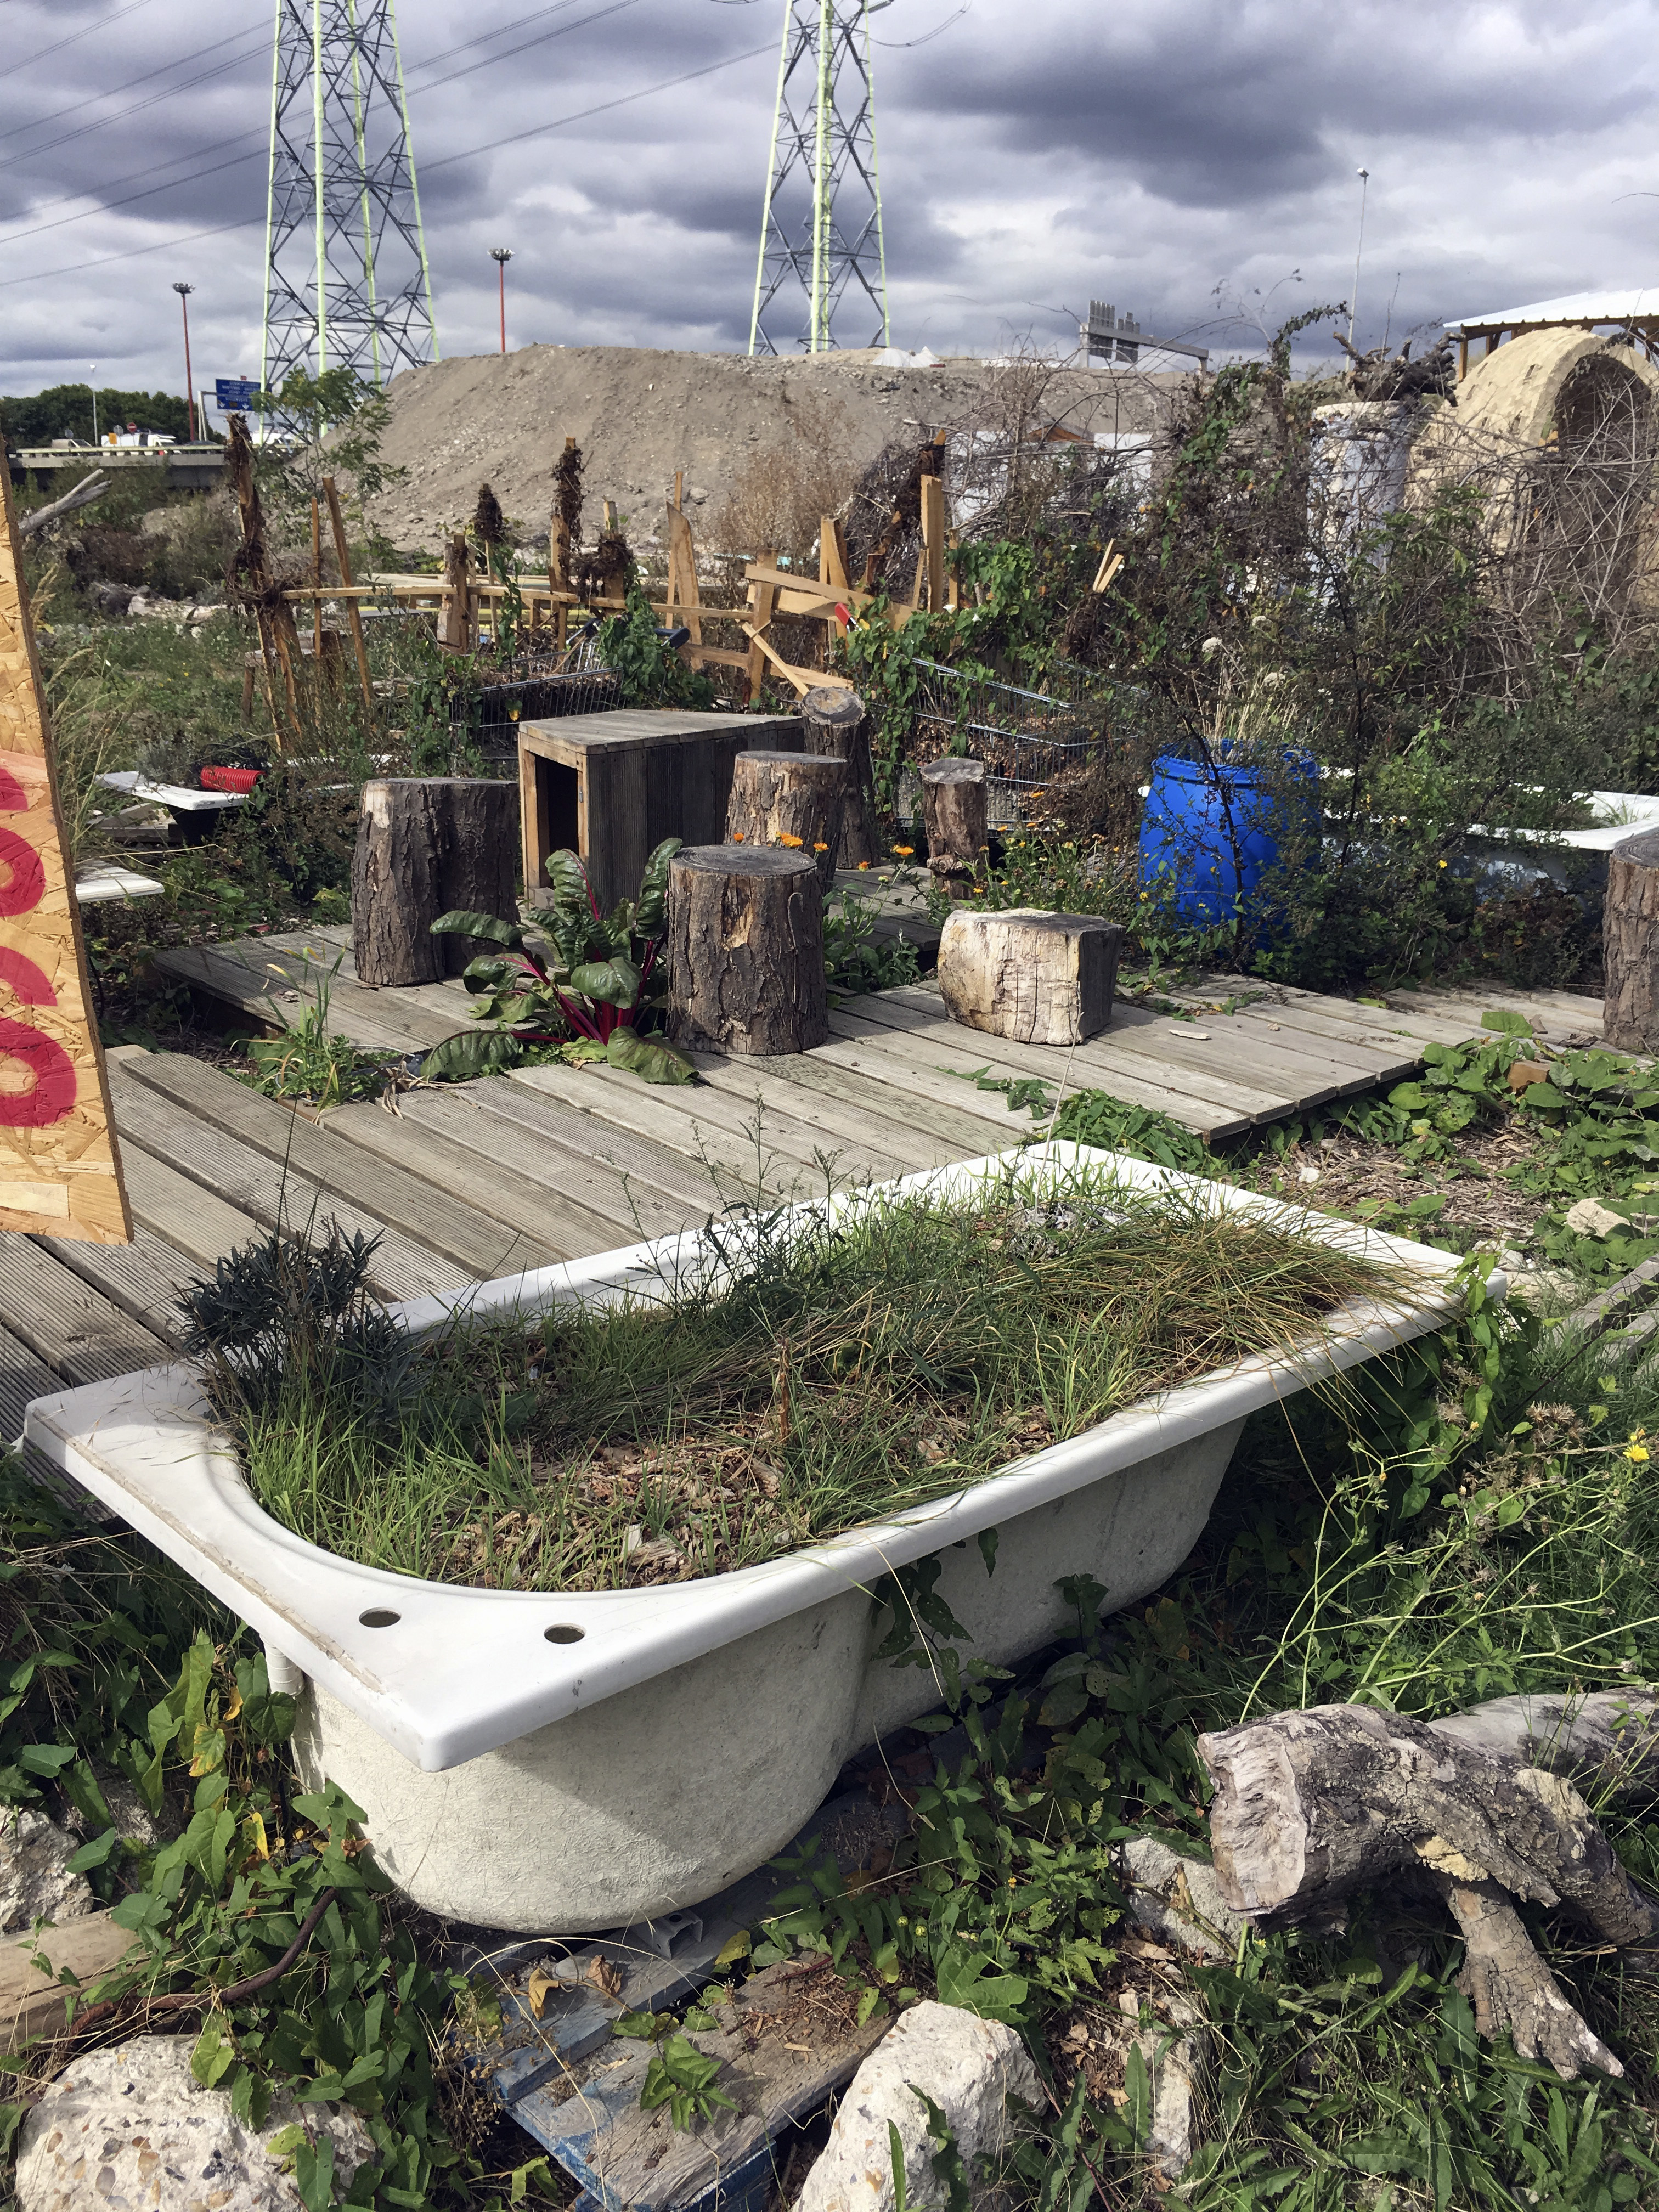 In this Monday, Sept. 4, 2017 photo, a bathtub lays on the site where the future Olympic Village for athletes will be built when Paris holds the games in 2024, in Saint-Denis, north of Paris. The International Olympic Committee is expected at a meeting We